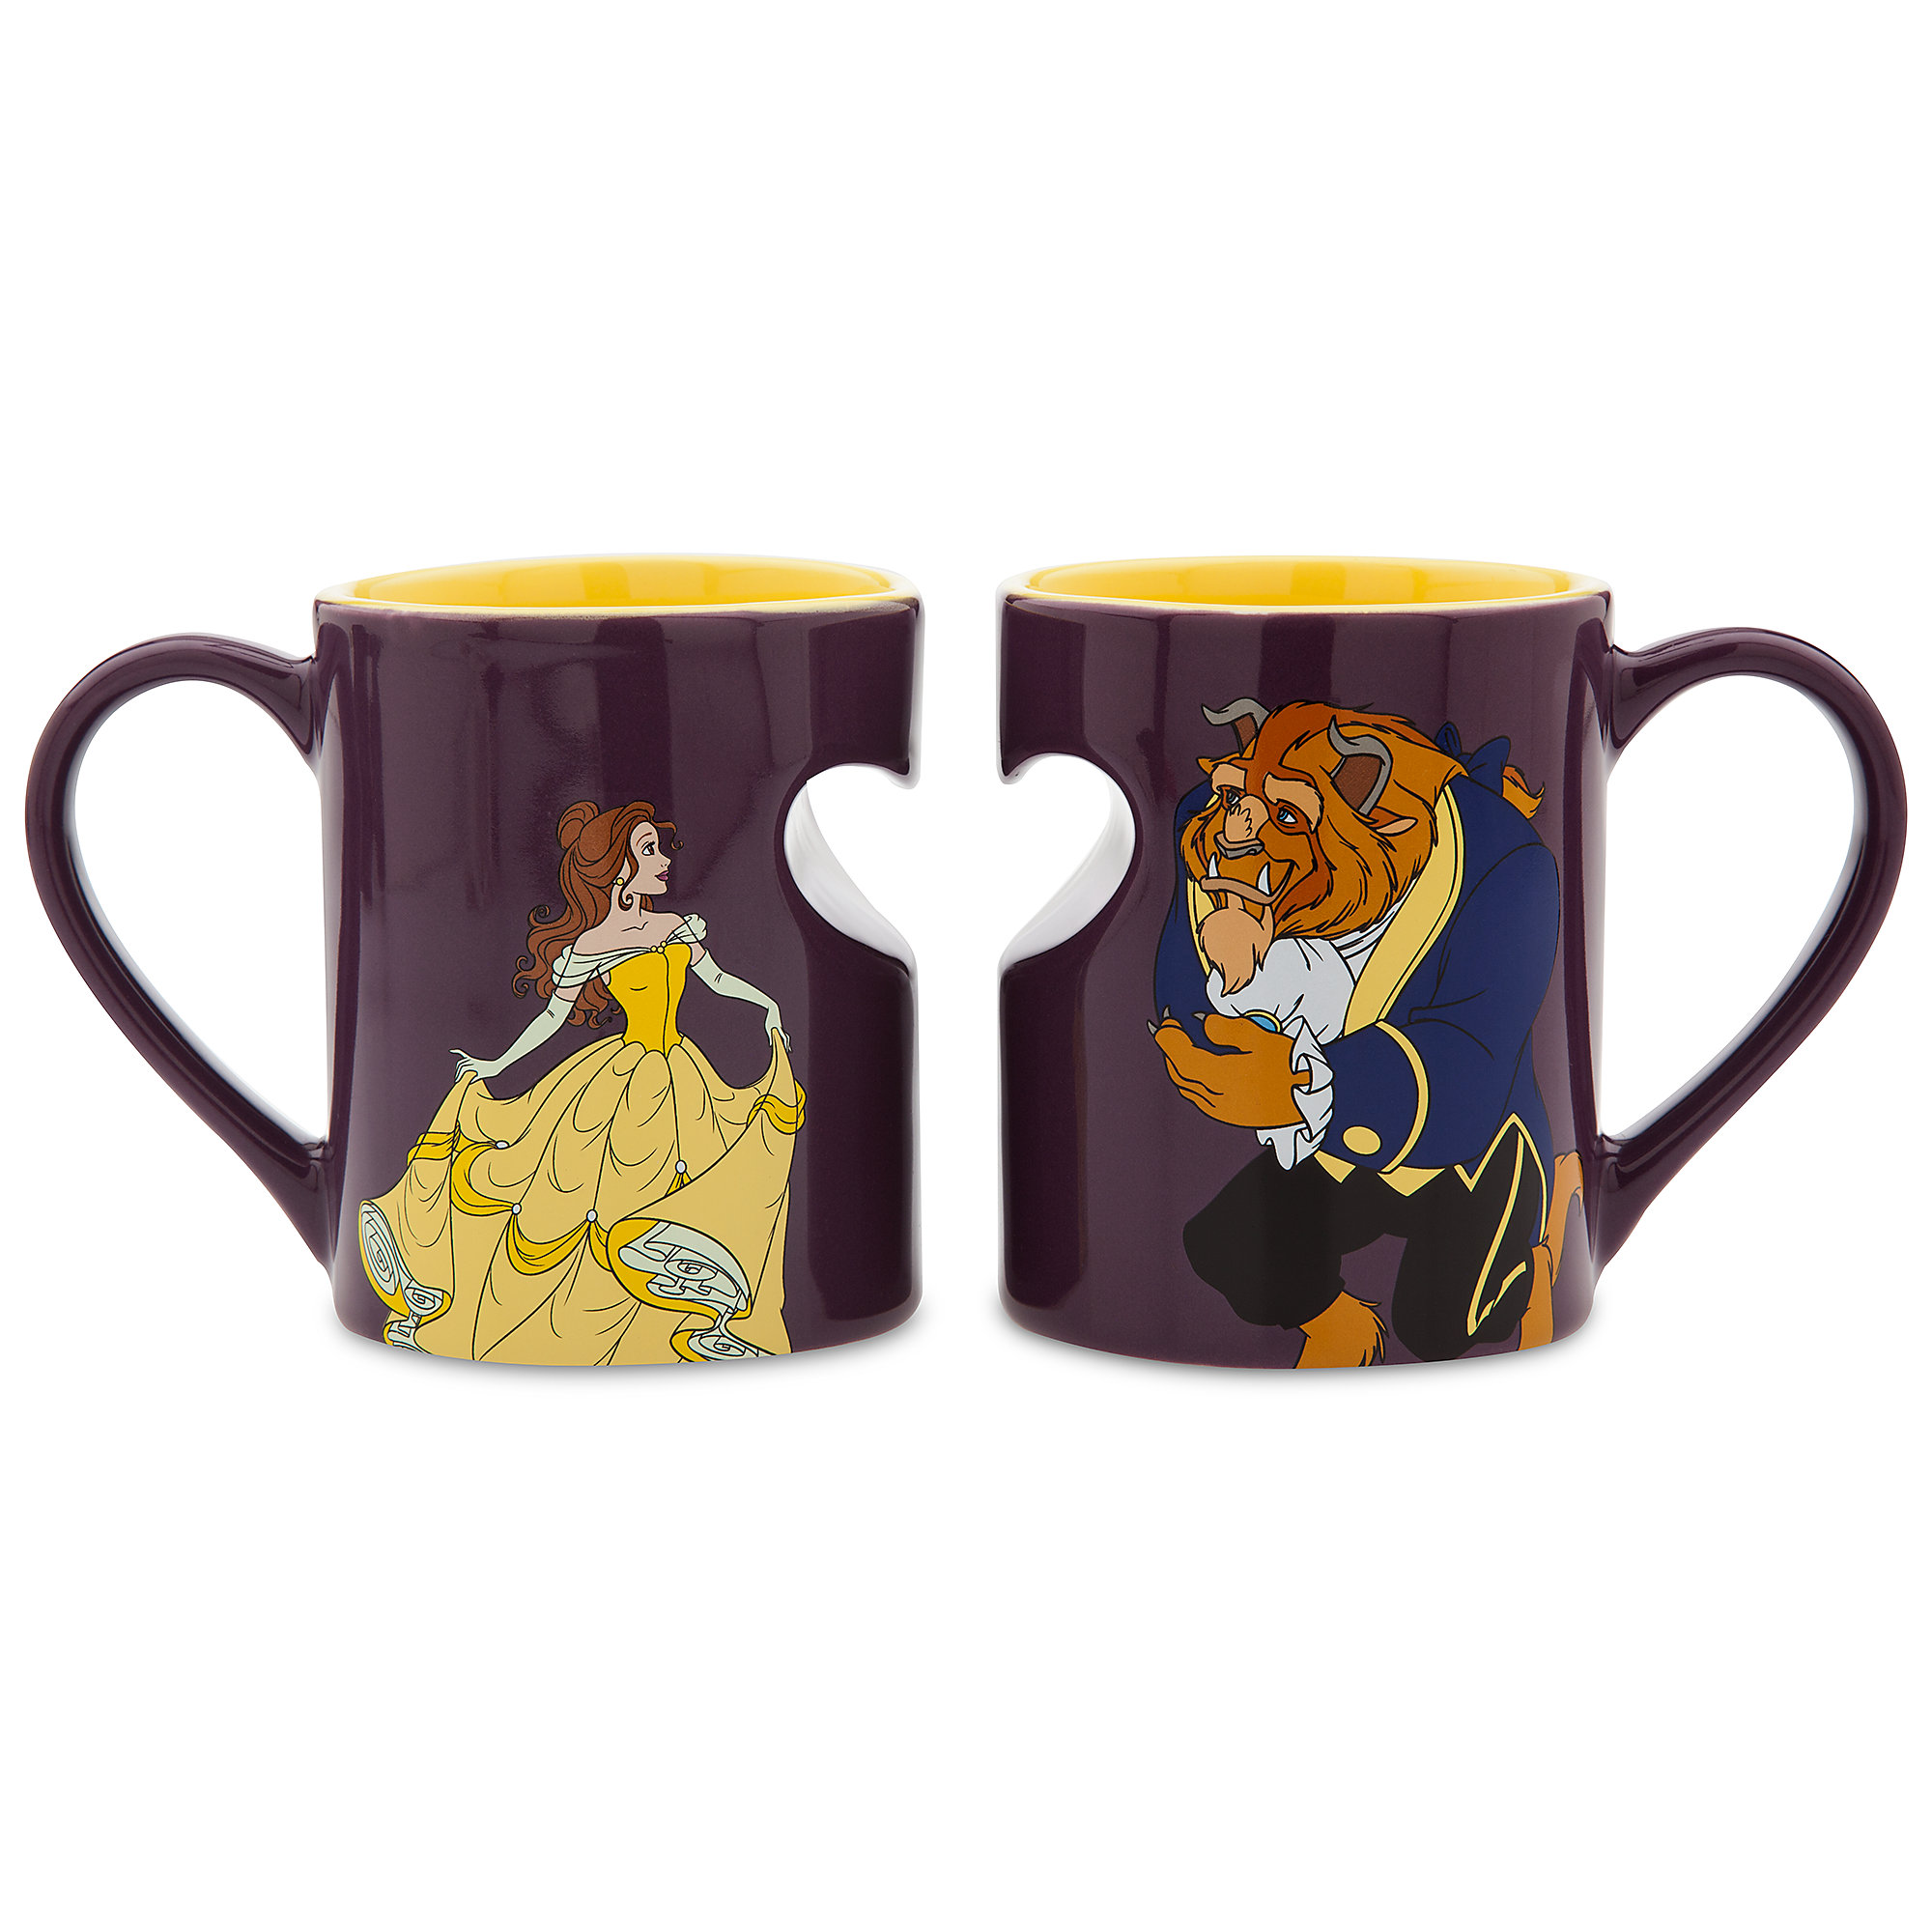 Grand Beast Classic Mug Set Shopdisney Coffee Mug Sets Online Coffee Mug Sets Sale Beast Classic Mug Set Beauty Beauty furniture Coffe Mug Sets